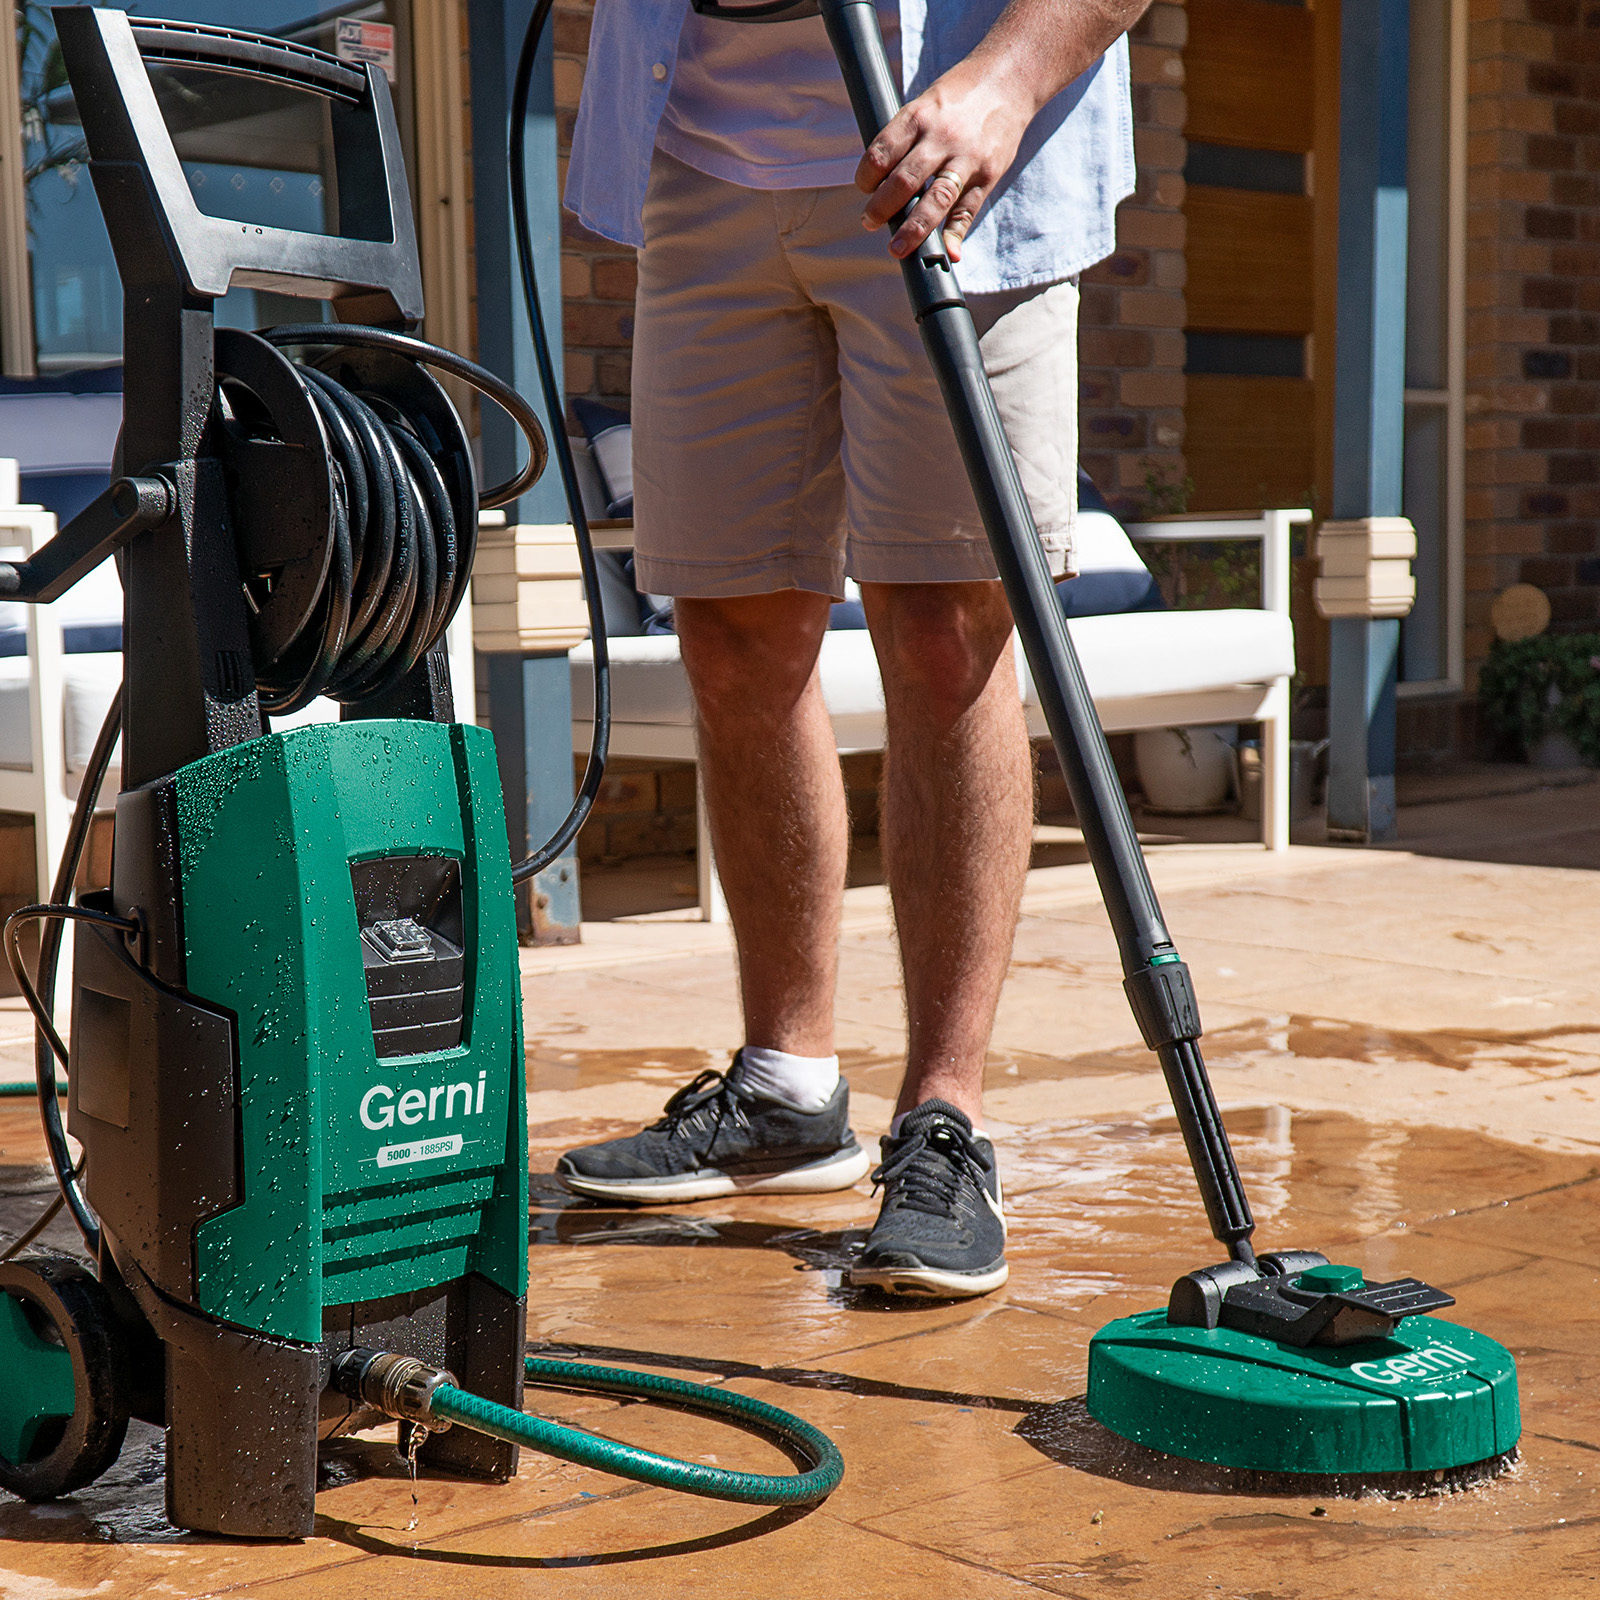 Gerni 5000 - Mid Patio Cleaner